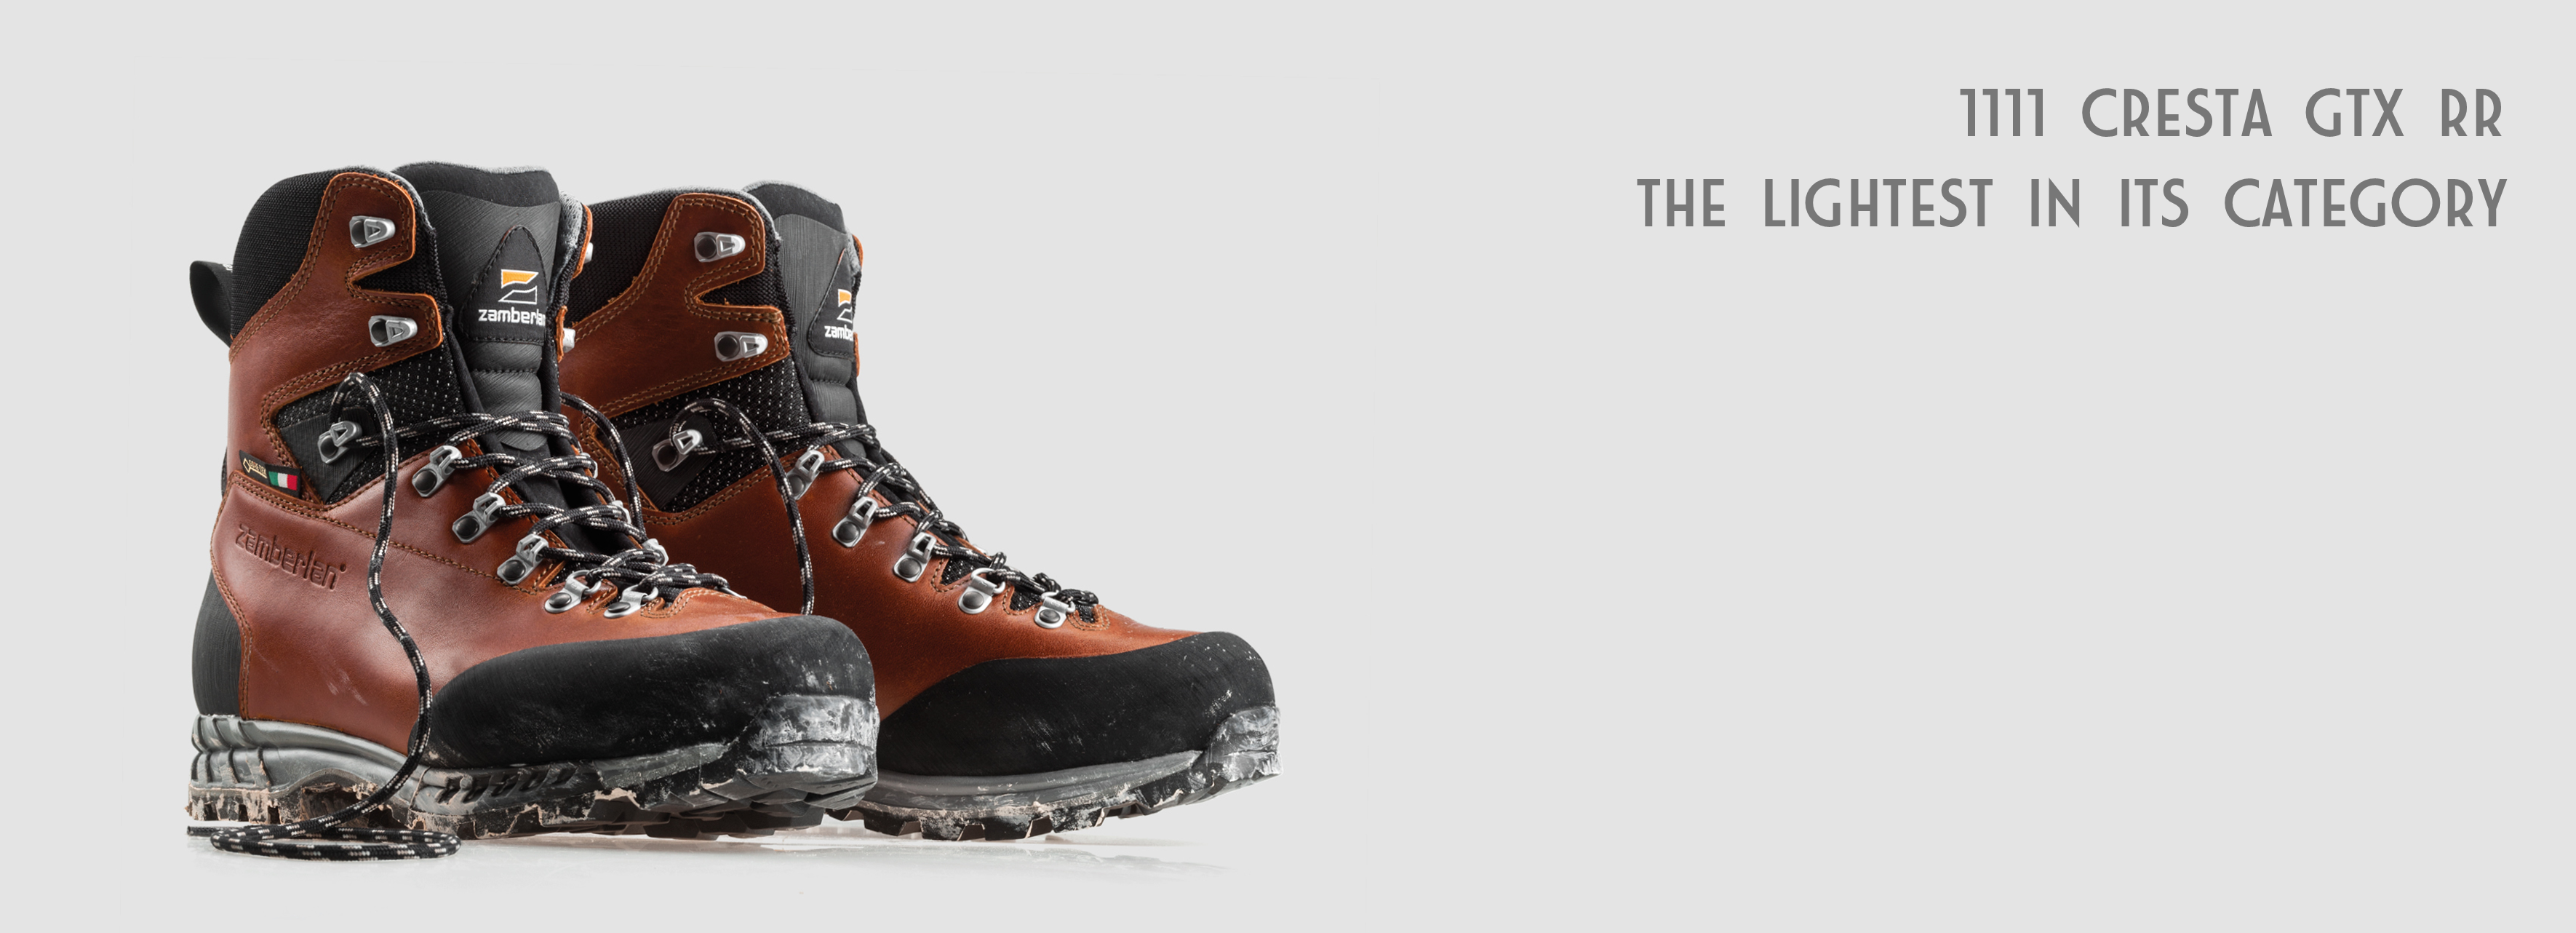 Zamberlan Mountaineering Boots Trekking Boots Hiking Shoes And Hunting Boots Since 1929